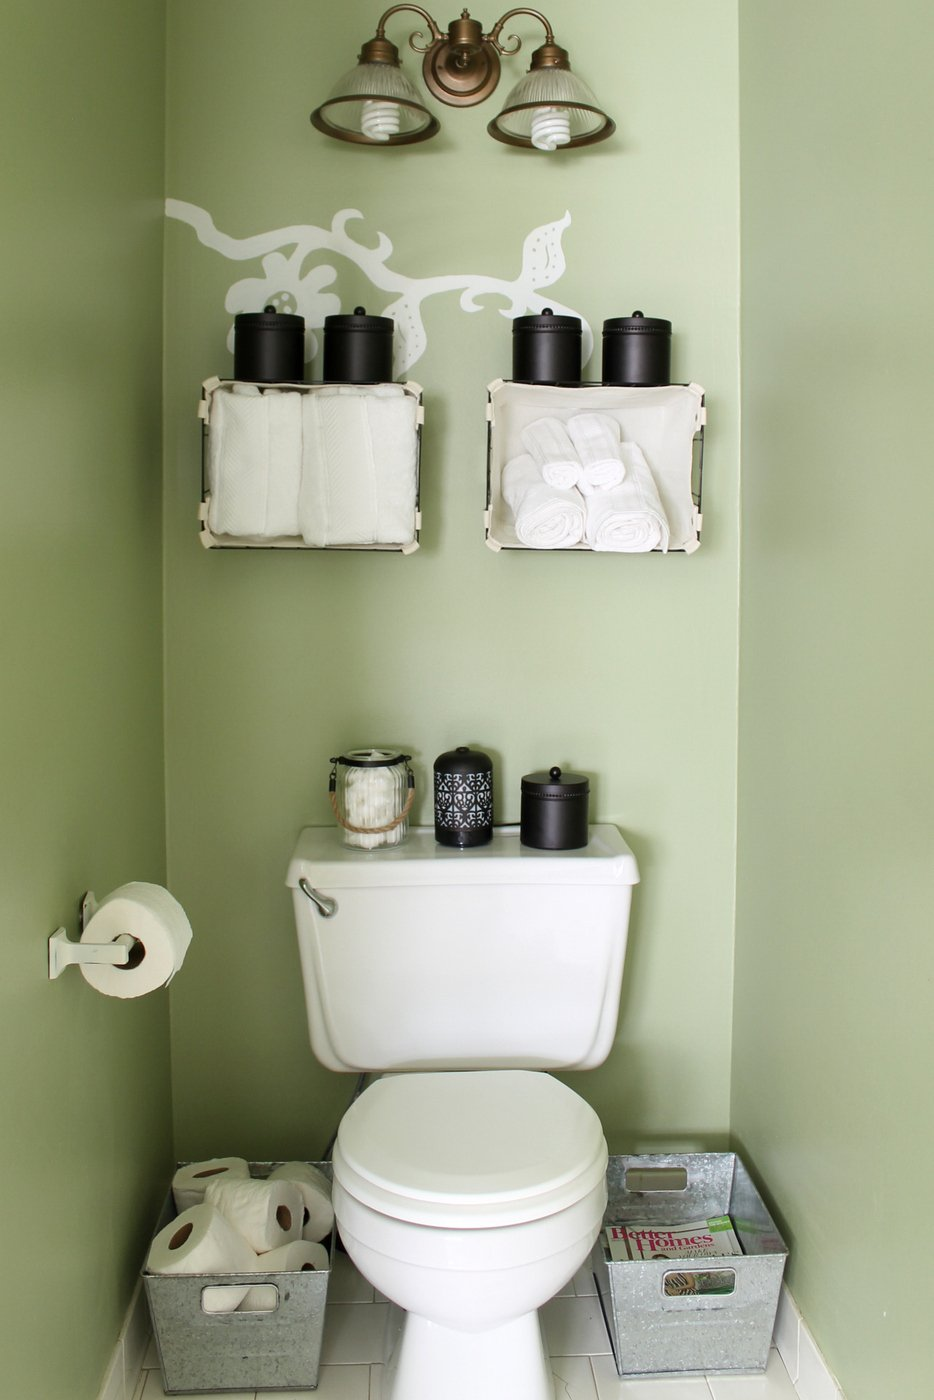 Small bathroom organization ideas the country chic cottage Bathroom organizing ideas